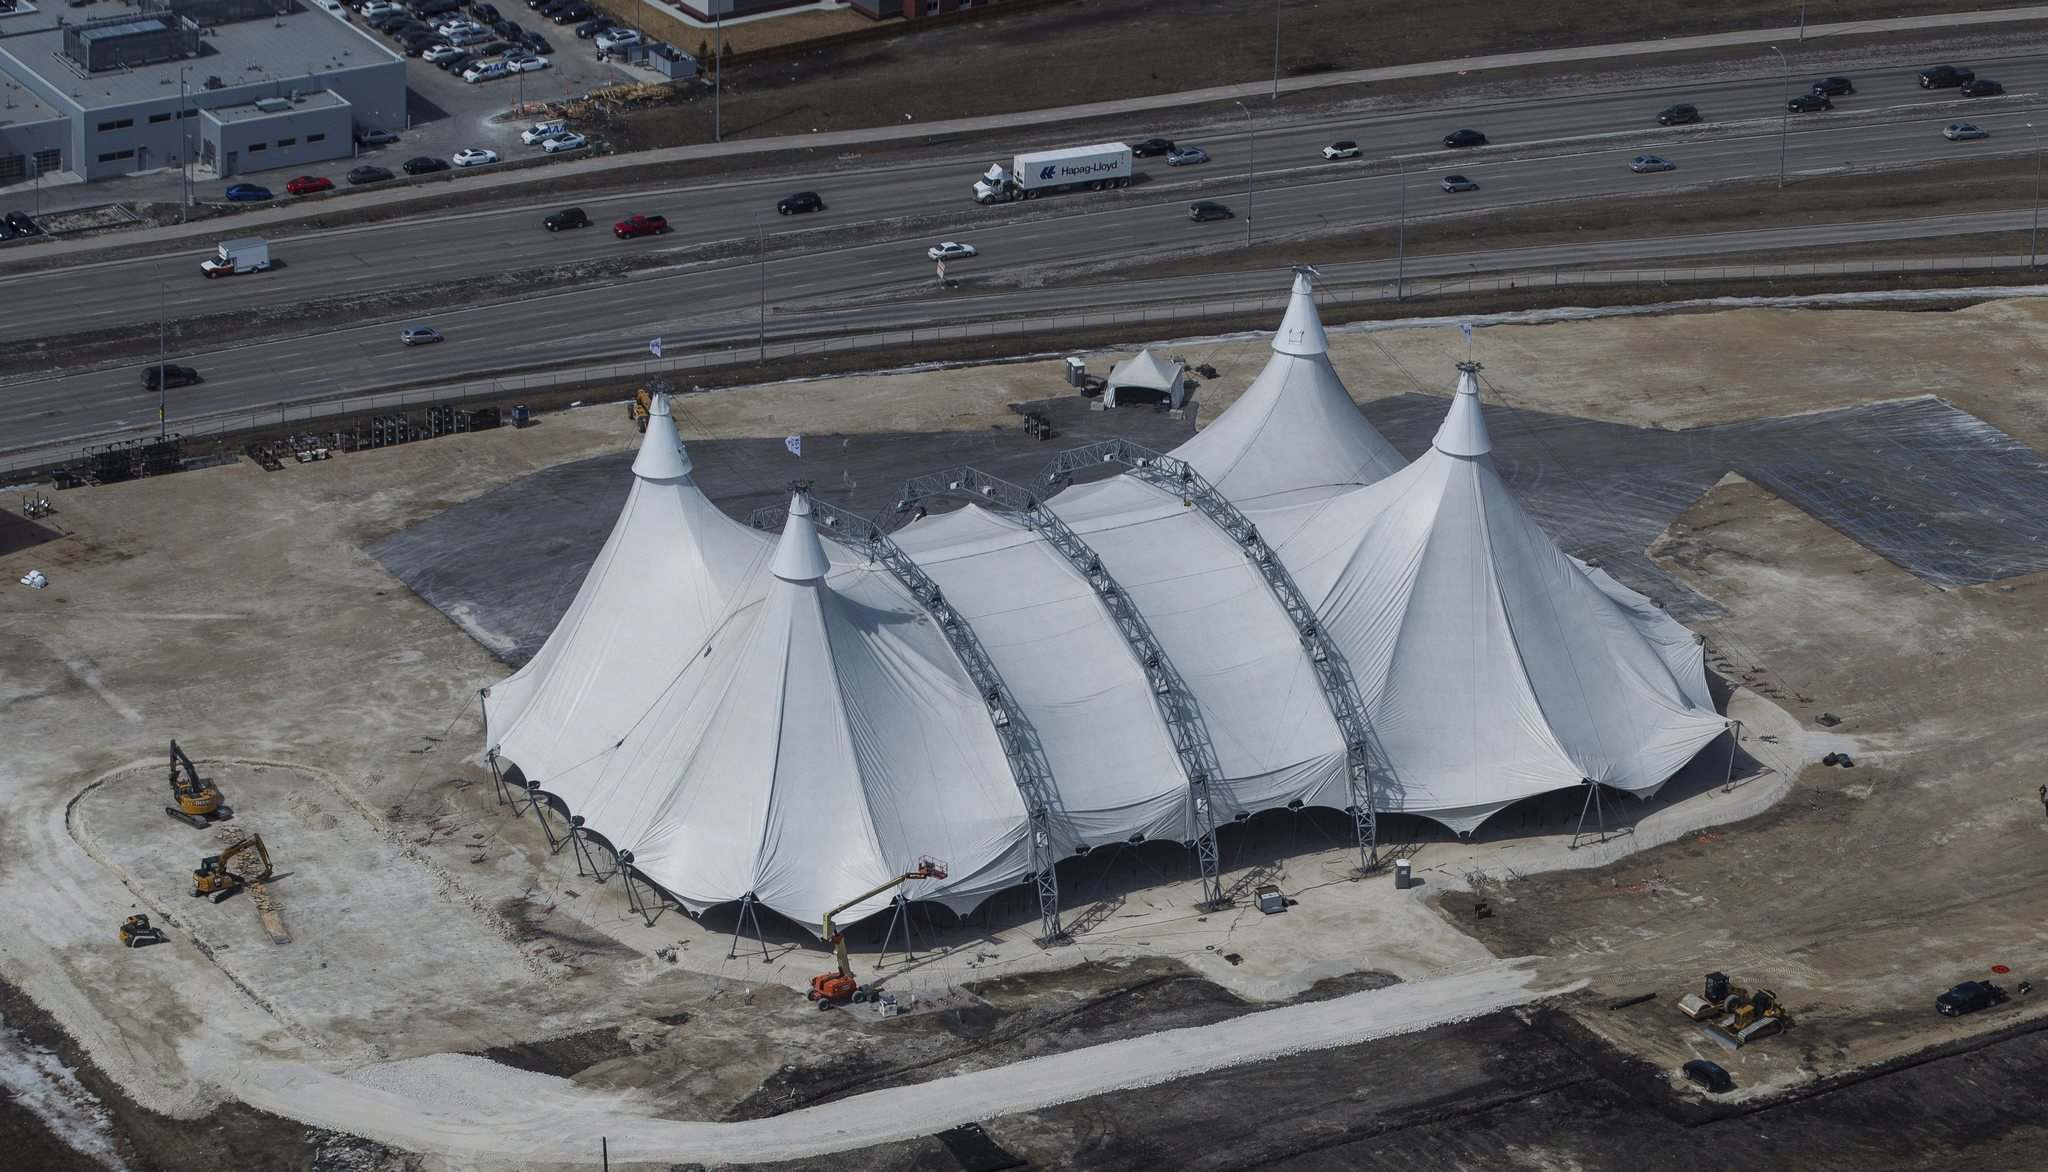 <p>Crews work to raise the White Big Top at the Cavalia Odysseo site Tuesday morning.</p> (MIKE DEAL / WINNIPEG FREE PRESS</P>)